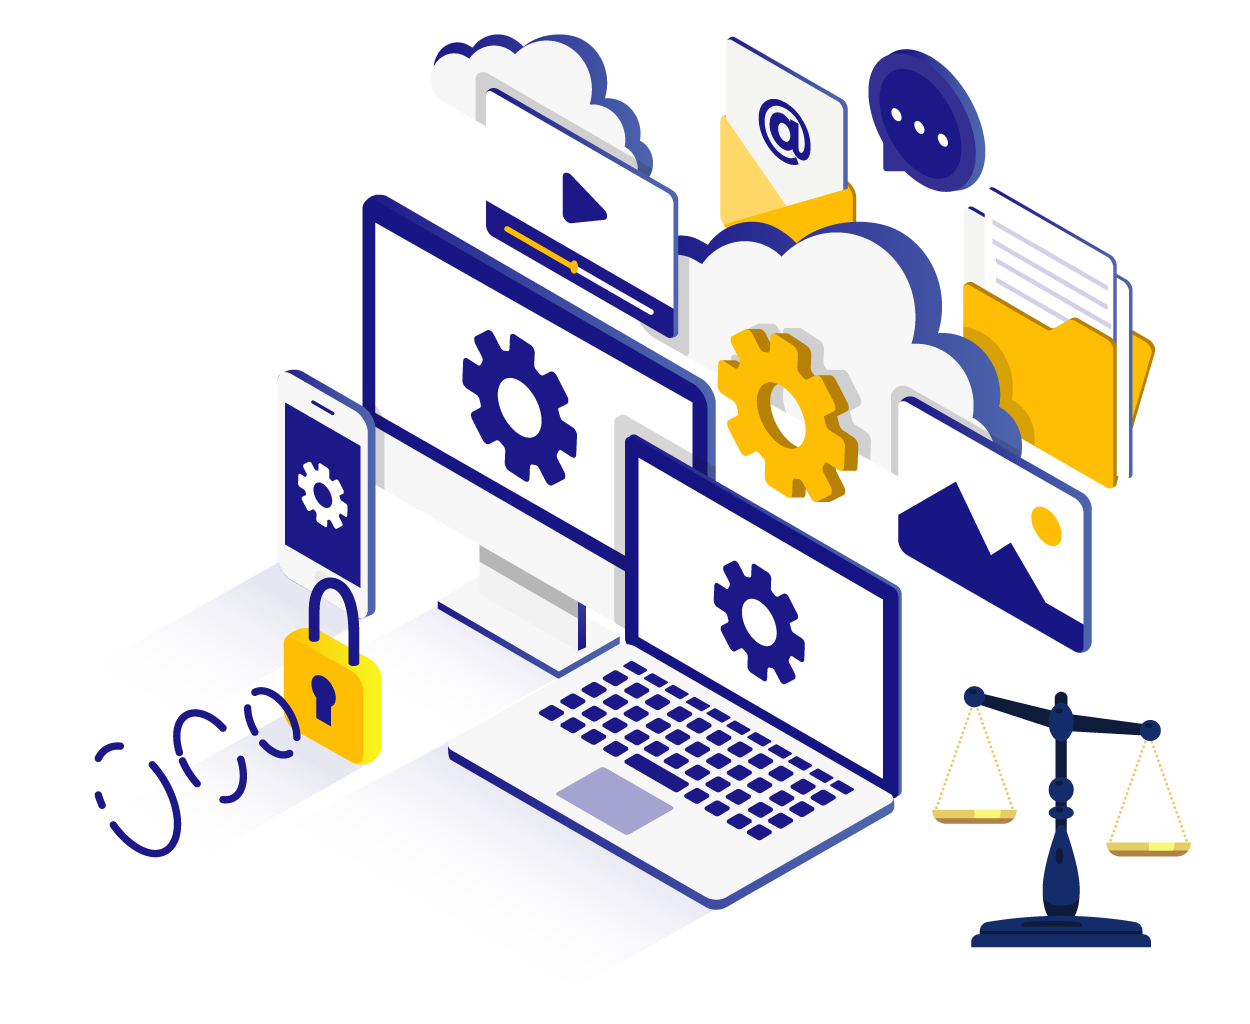 5-Things-the-Cloud-Does-for-Law-Firms